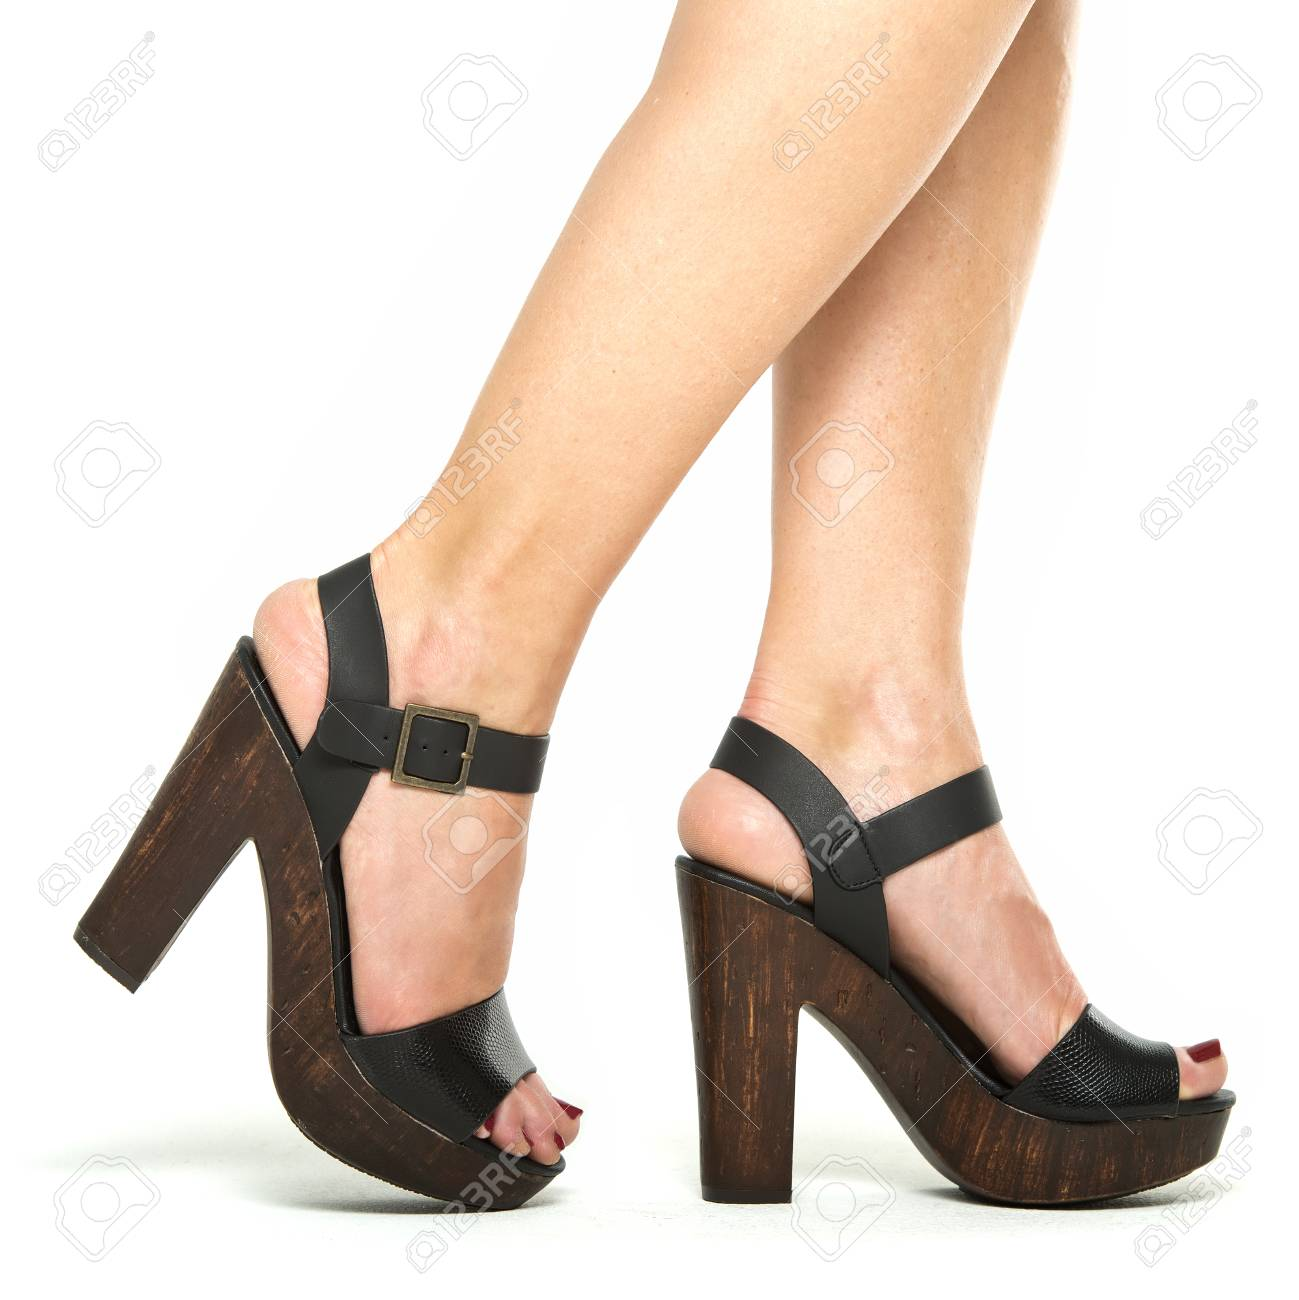 4c7b7658224 Female legs in black high heels shoes for summer with platform..